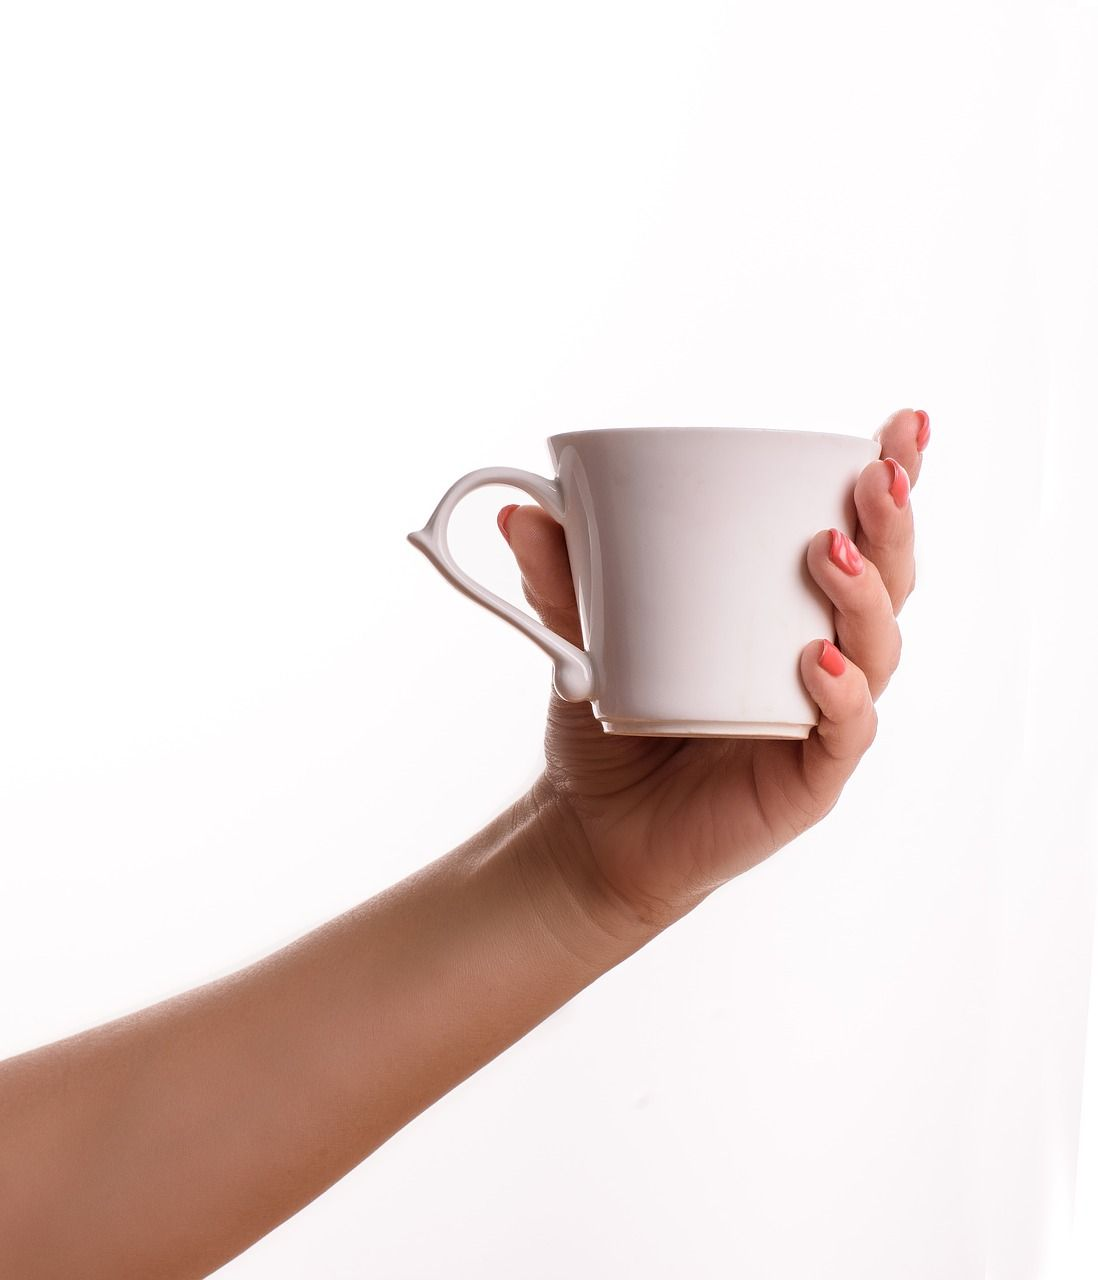 Coffee White Background Cup Coffee Hand Coffee Whitebackground Cup Coffee Hand Blended Coffee Glassware Great Coffee